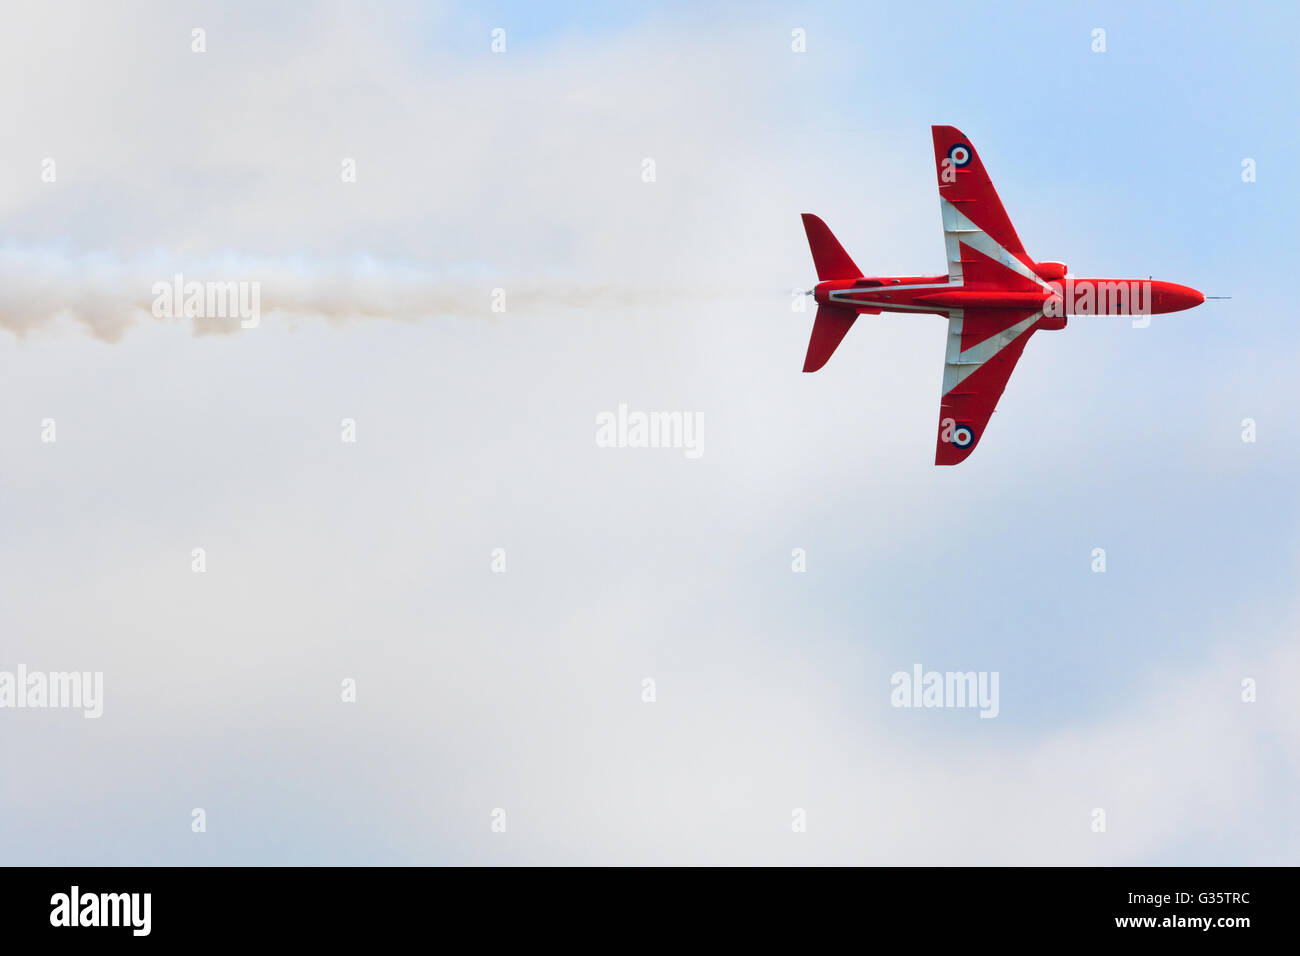 Red Arrows plane flying straight, with white smoke, Duxford Airshow, Cambridgeshire UK - Stock Image